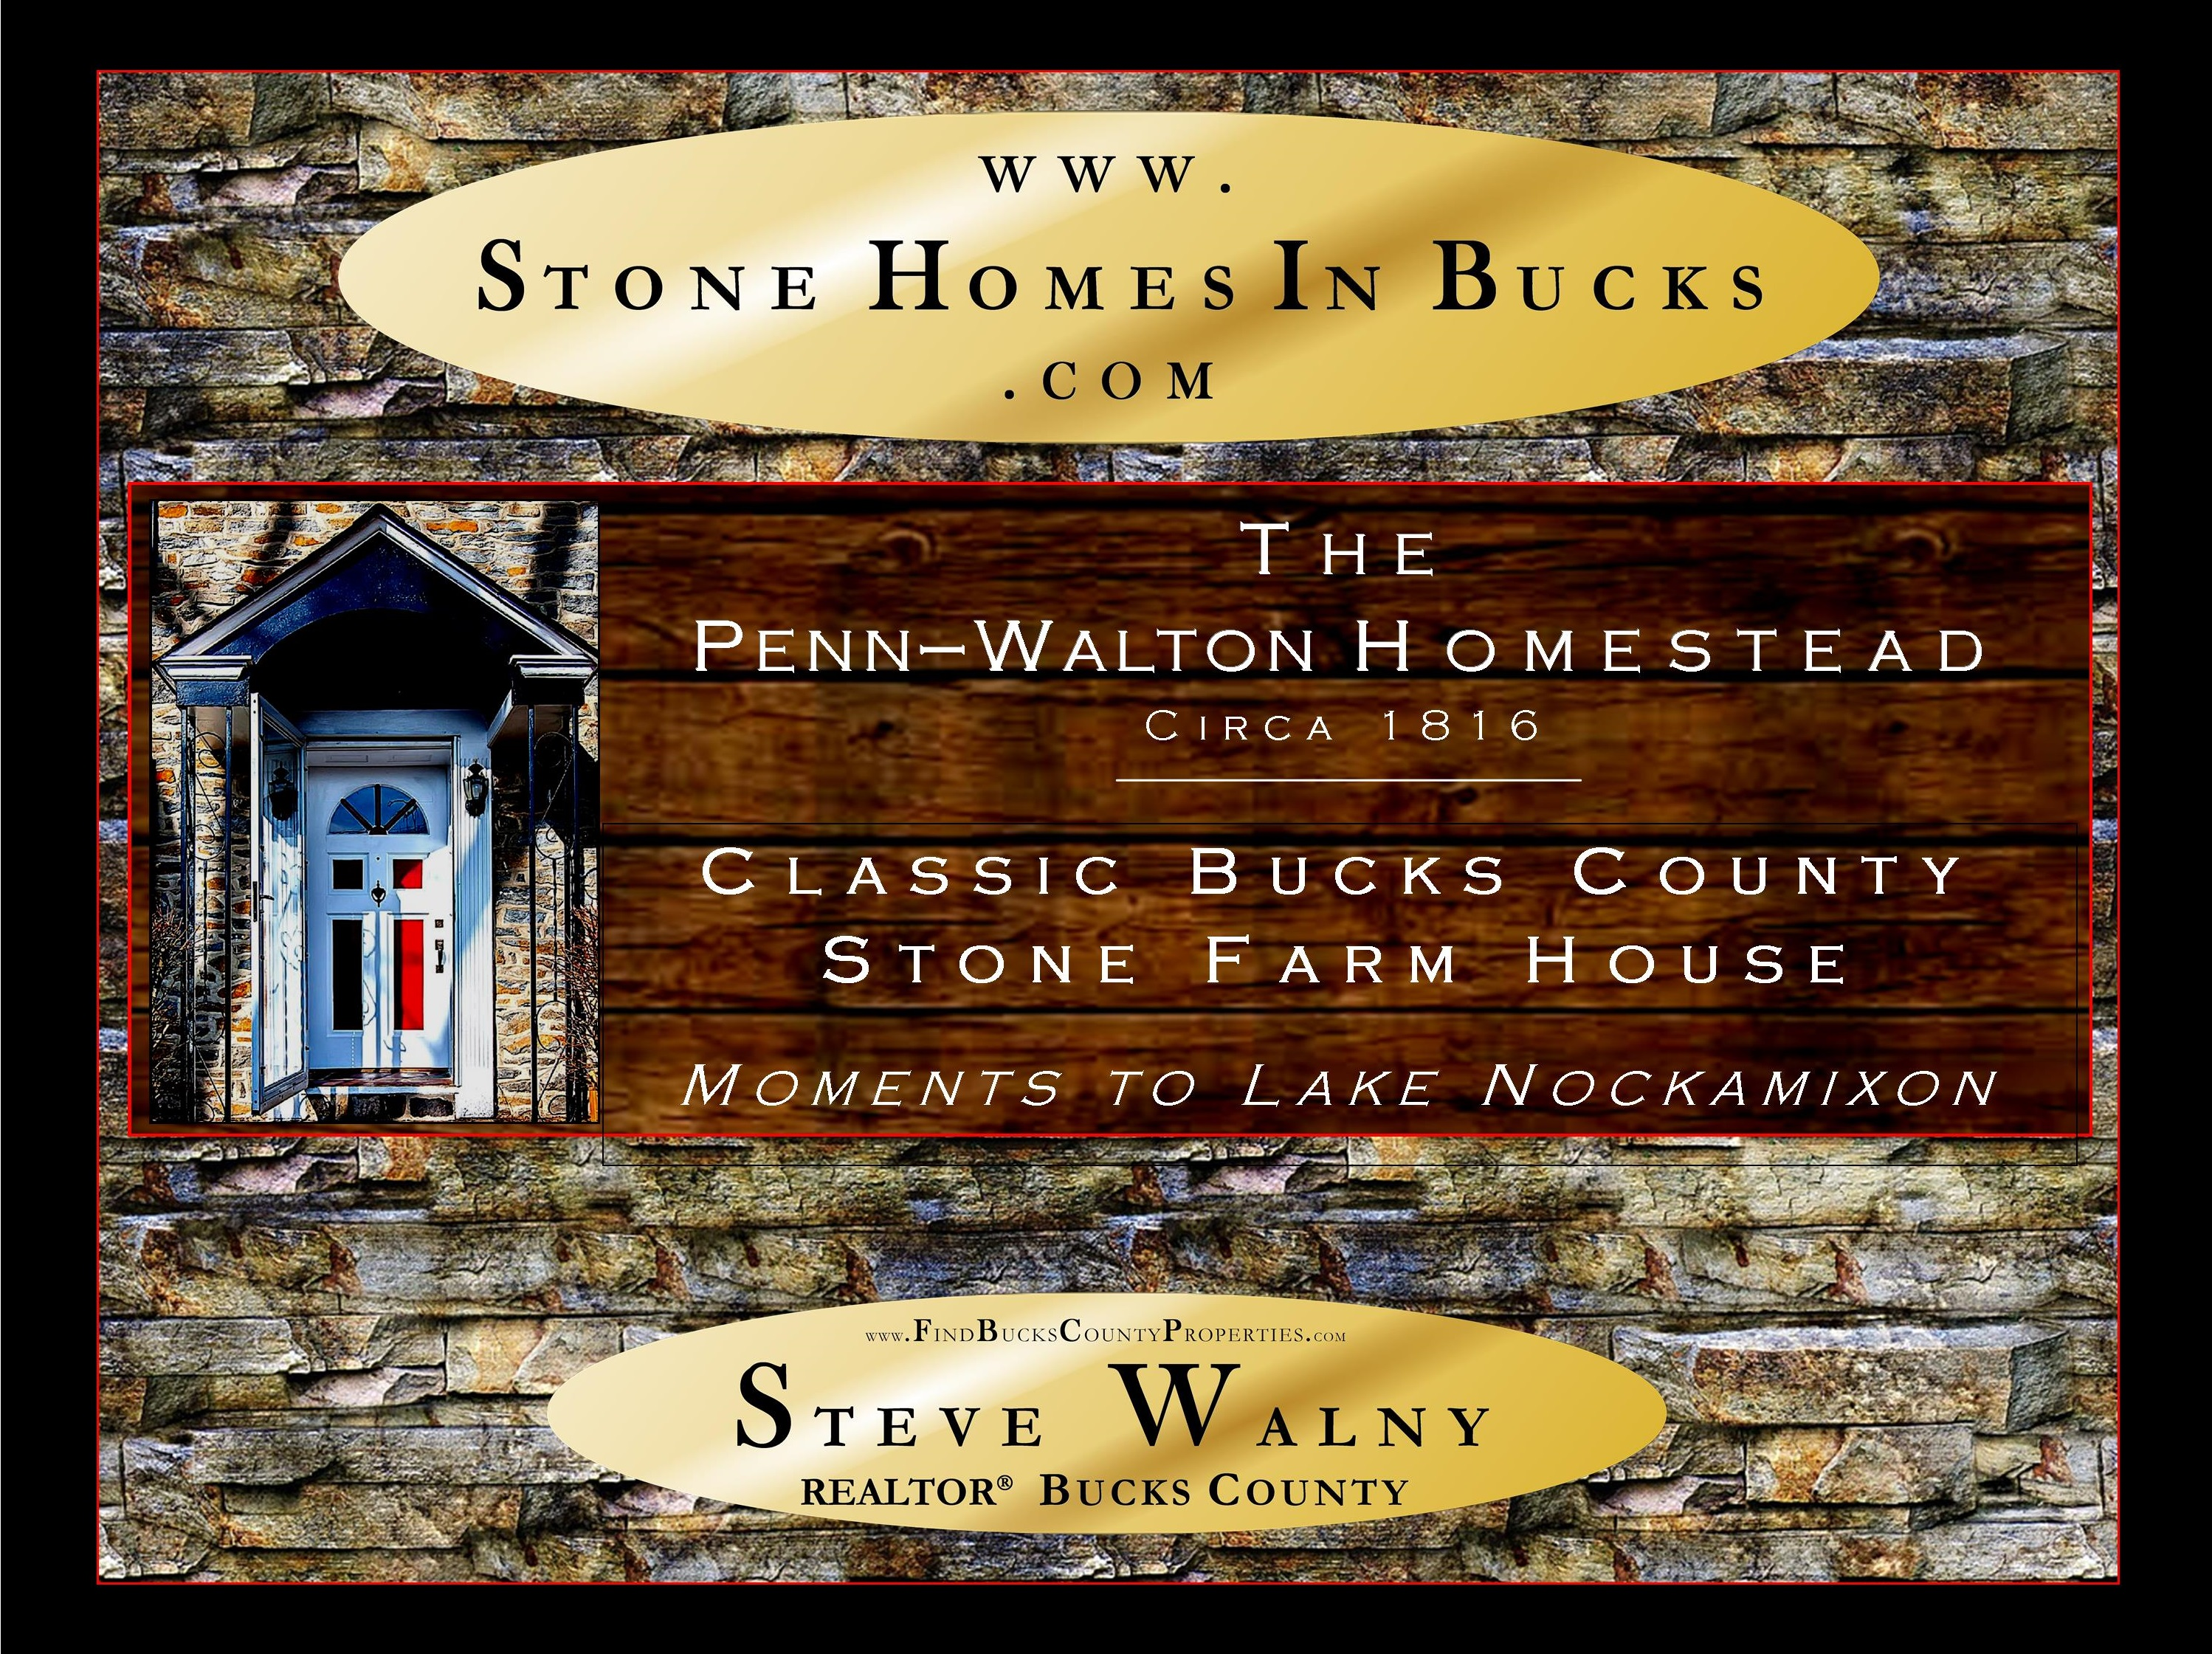 Stone Homes In Bucks | Bucks County Drone Video | WEIDEL Real Estate | Weidel Realtors | Doylestown Realtor | Steve Walny